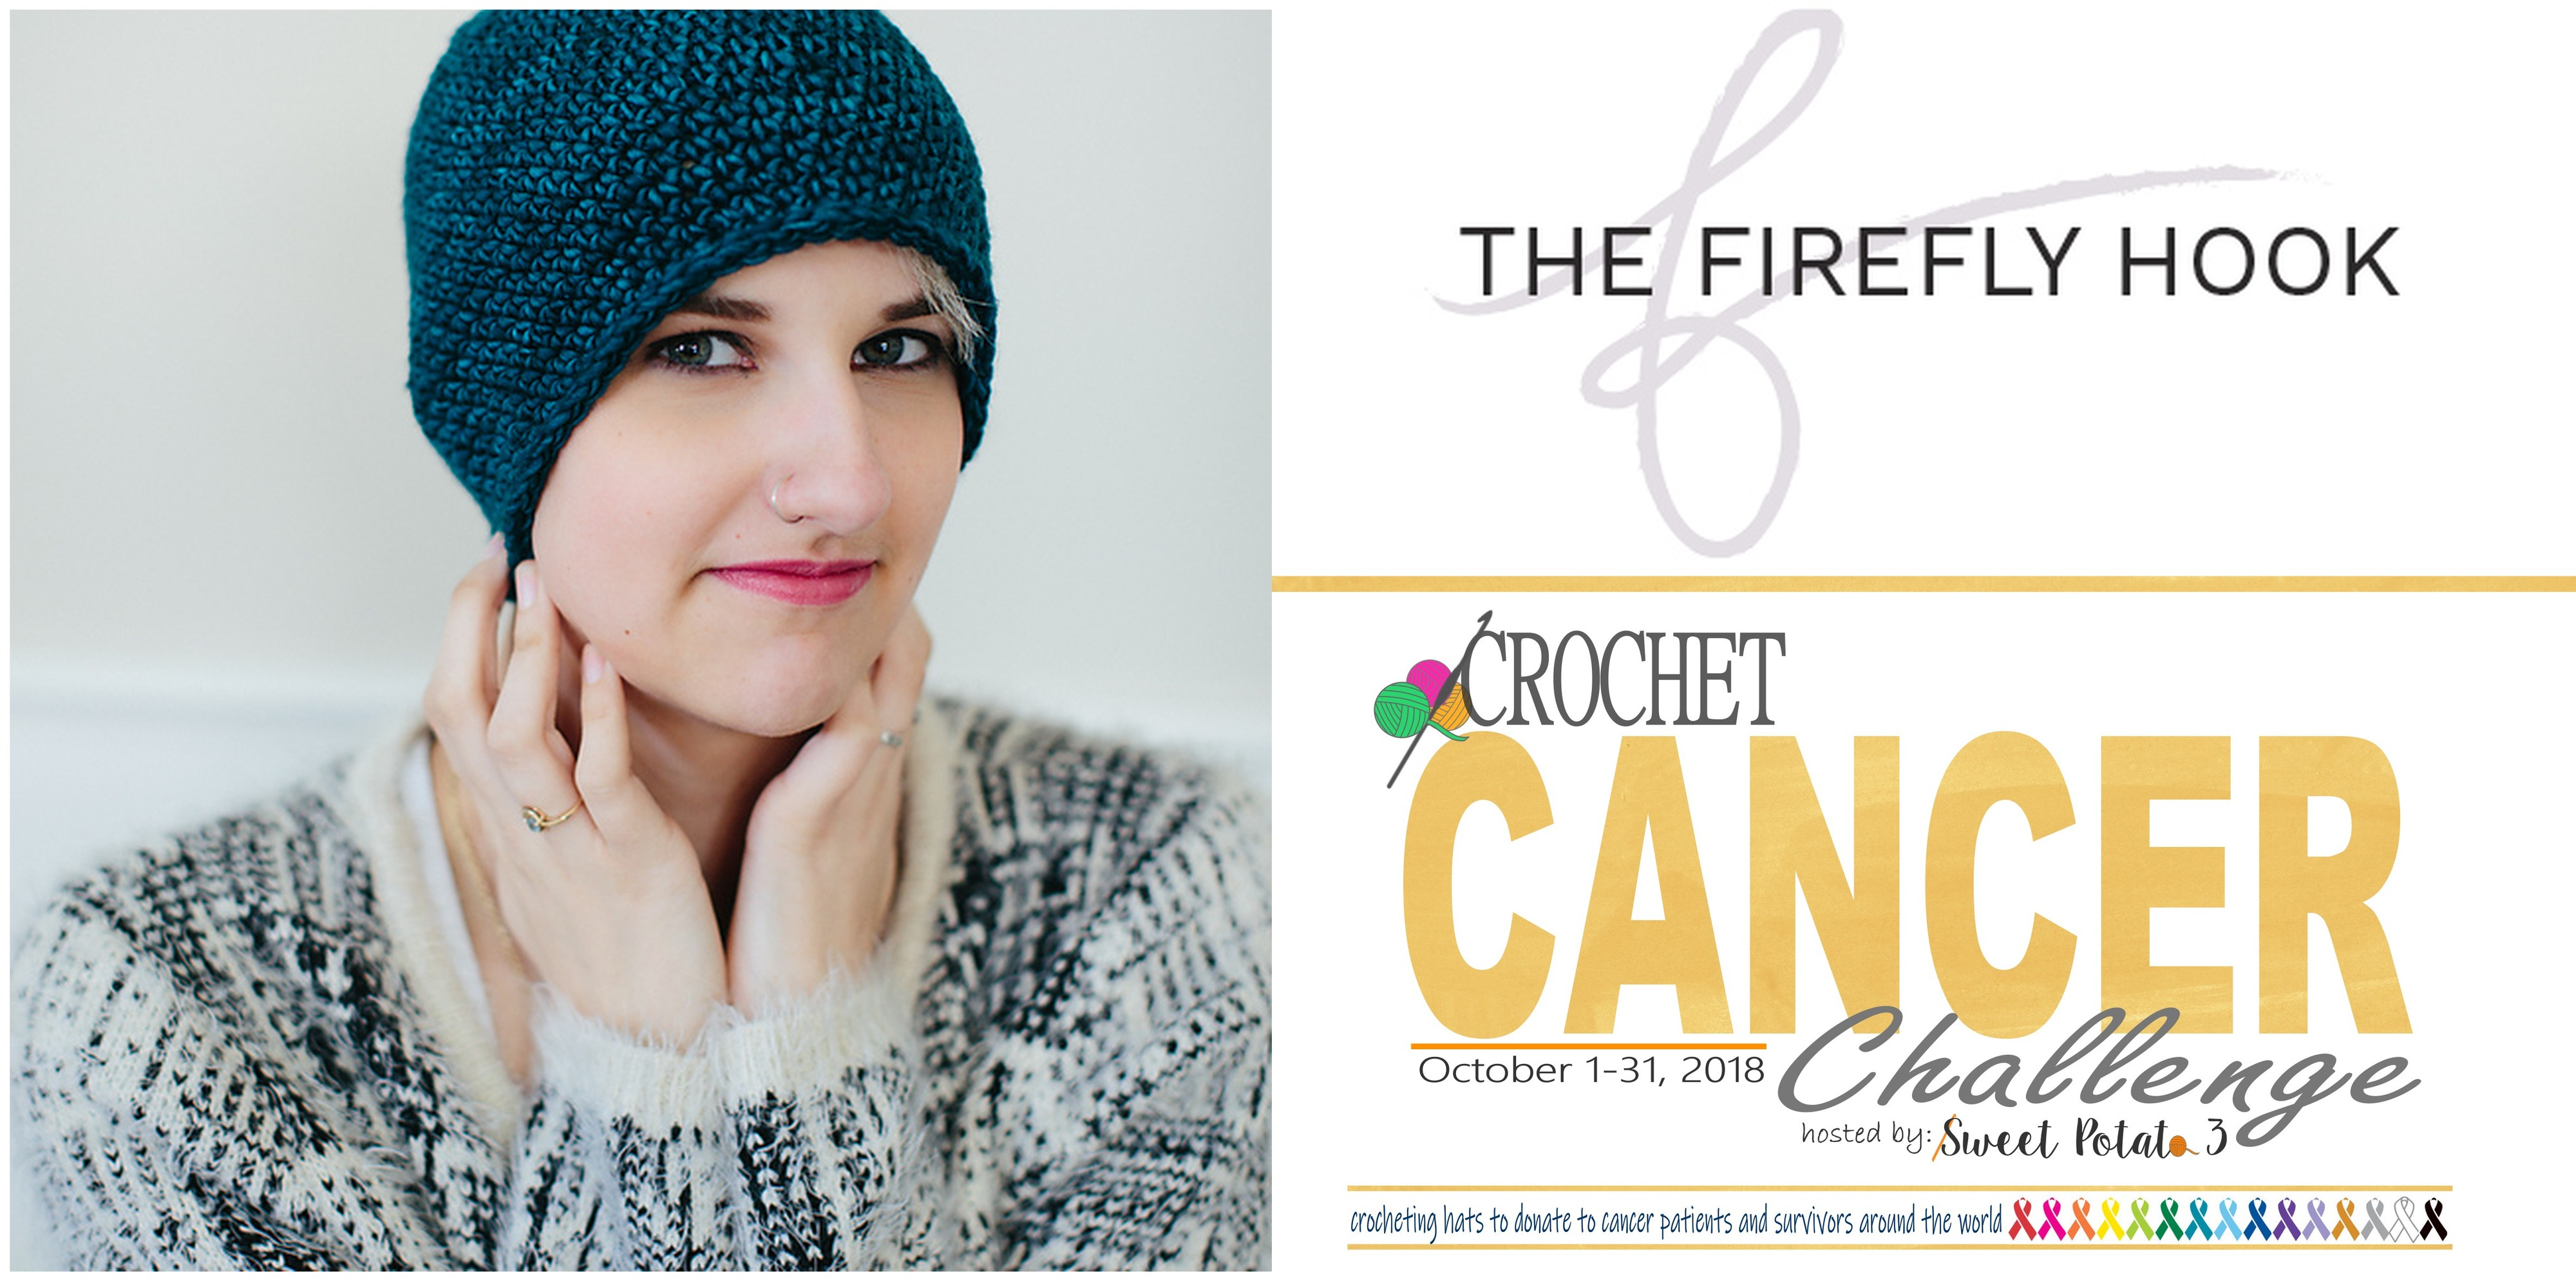 47948186cd4 Day 2  Cancer Challenge - The Firefly Hook ~ Sweet Potato 3